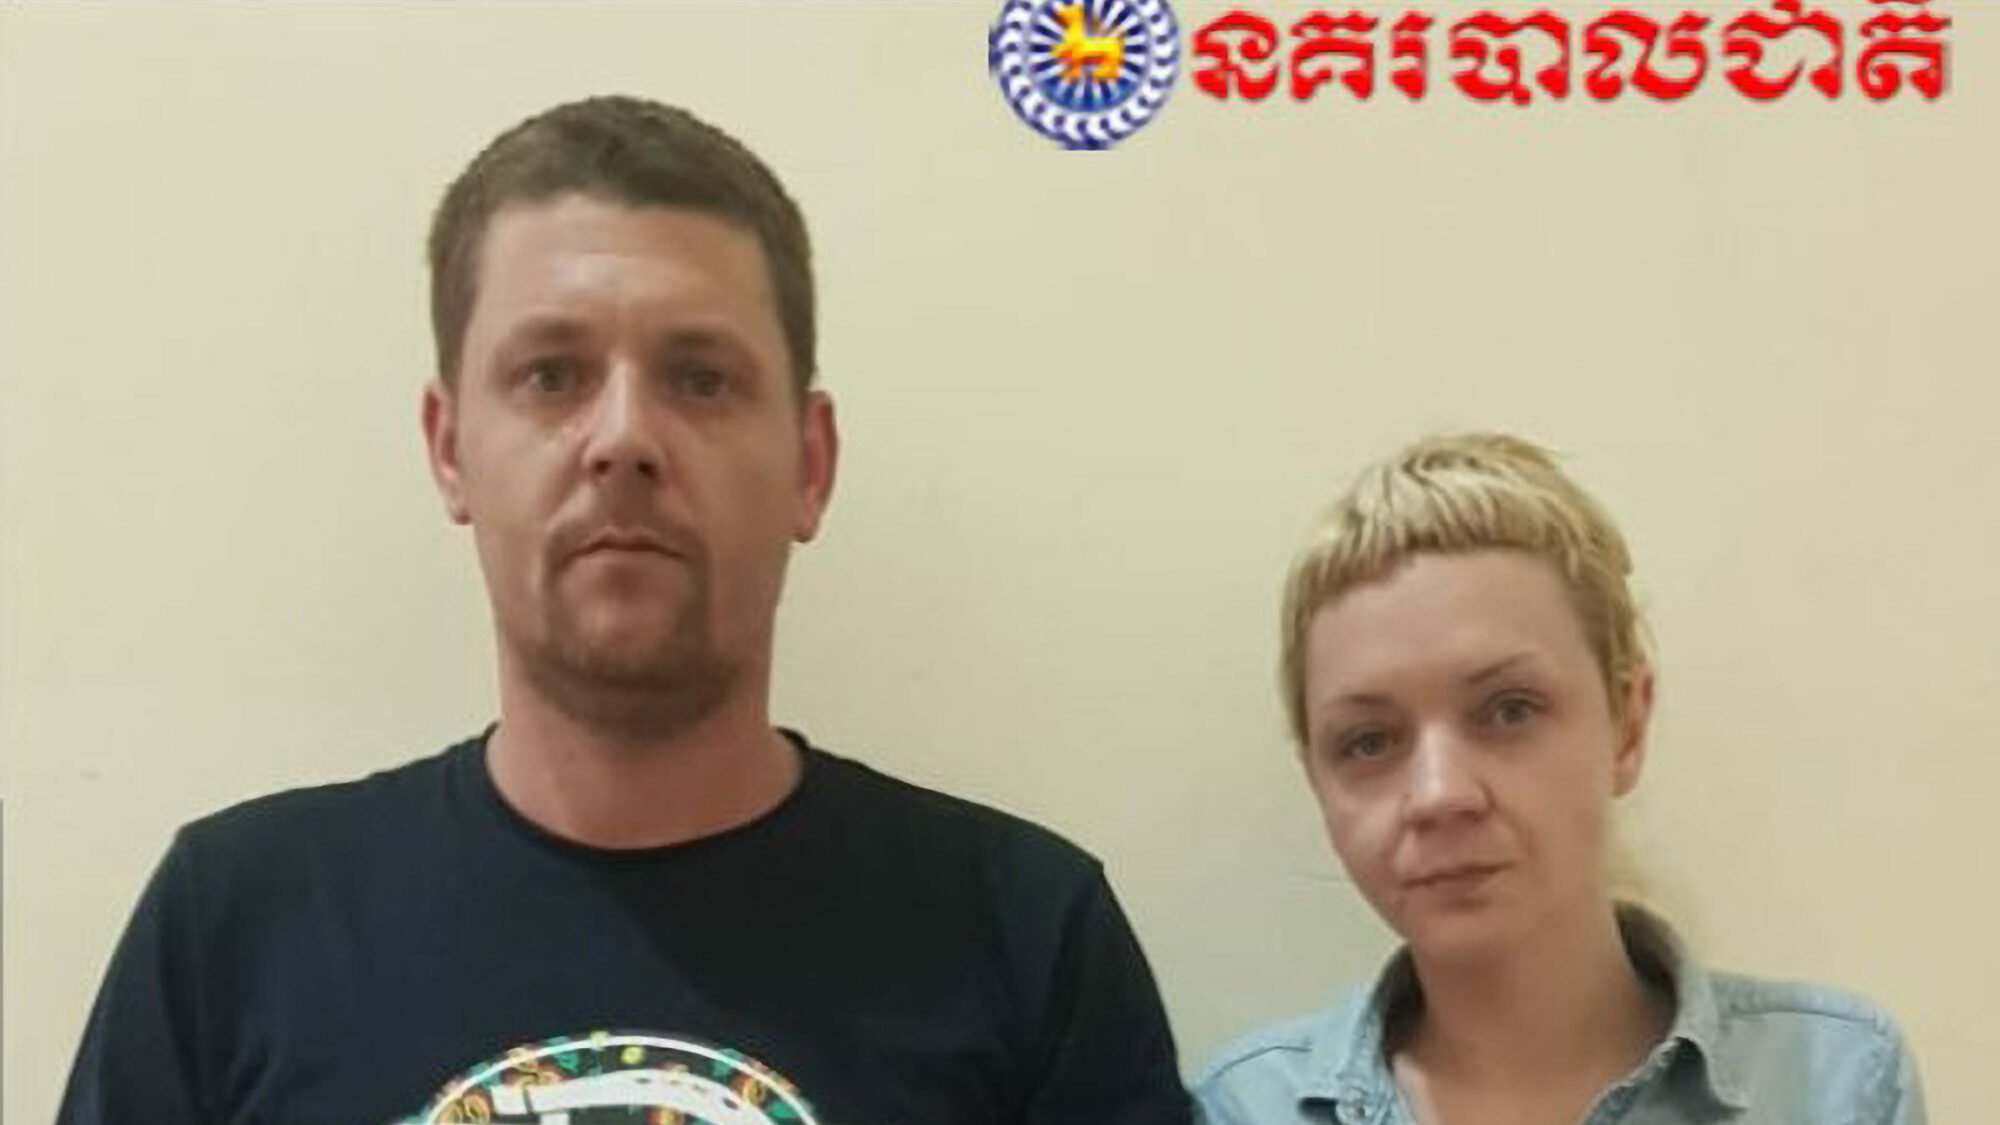 British Teacher and Fraudster Lover Held in Cambodia on Drugs, Robbery Charges